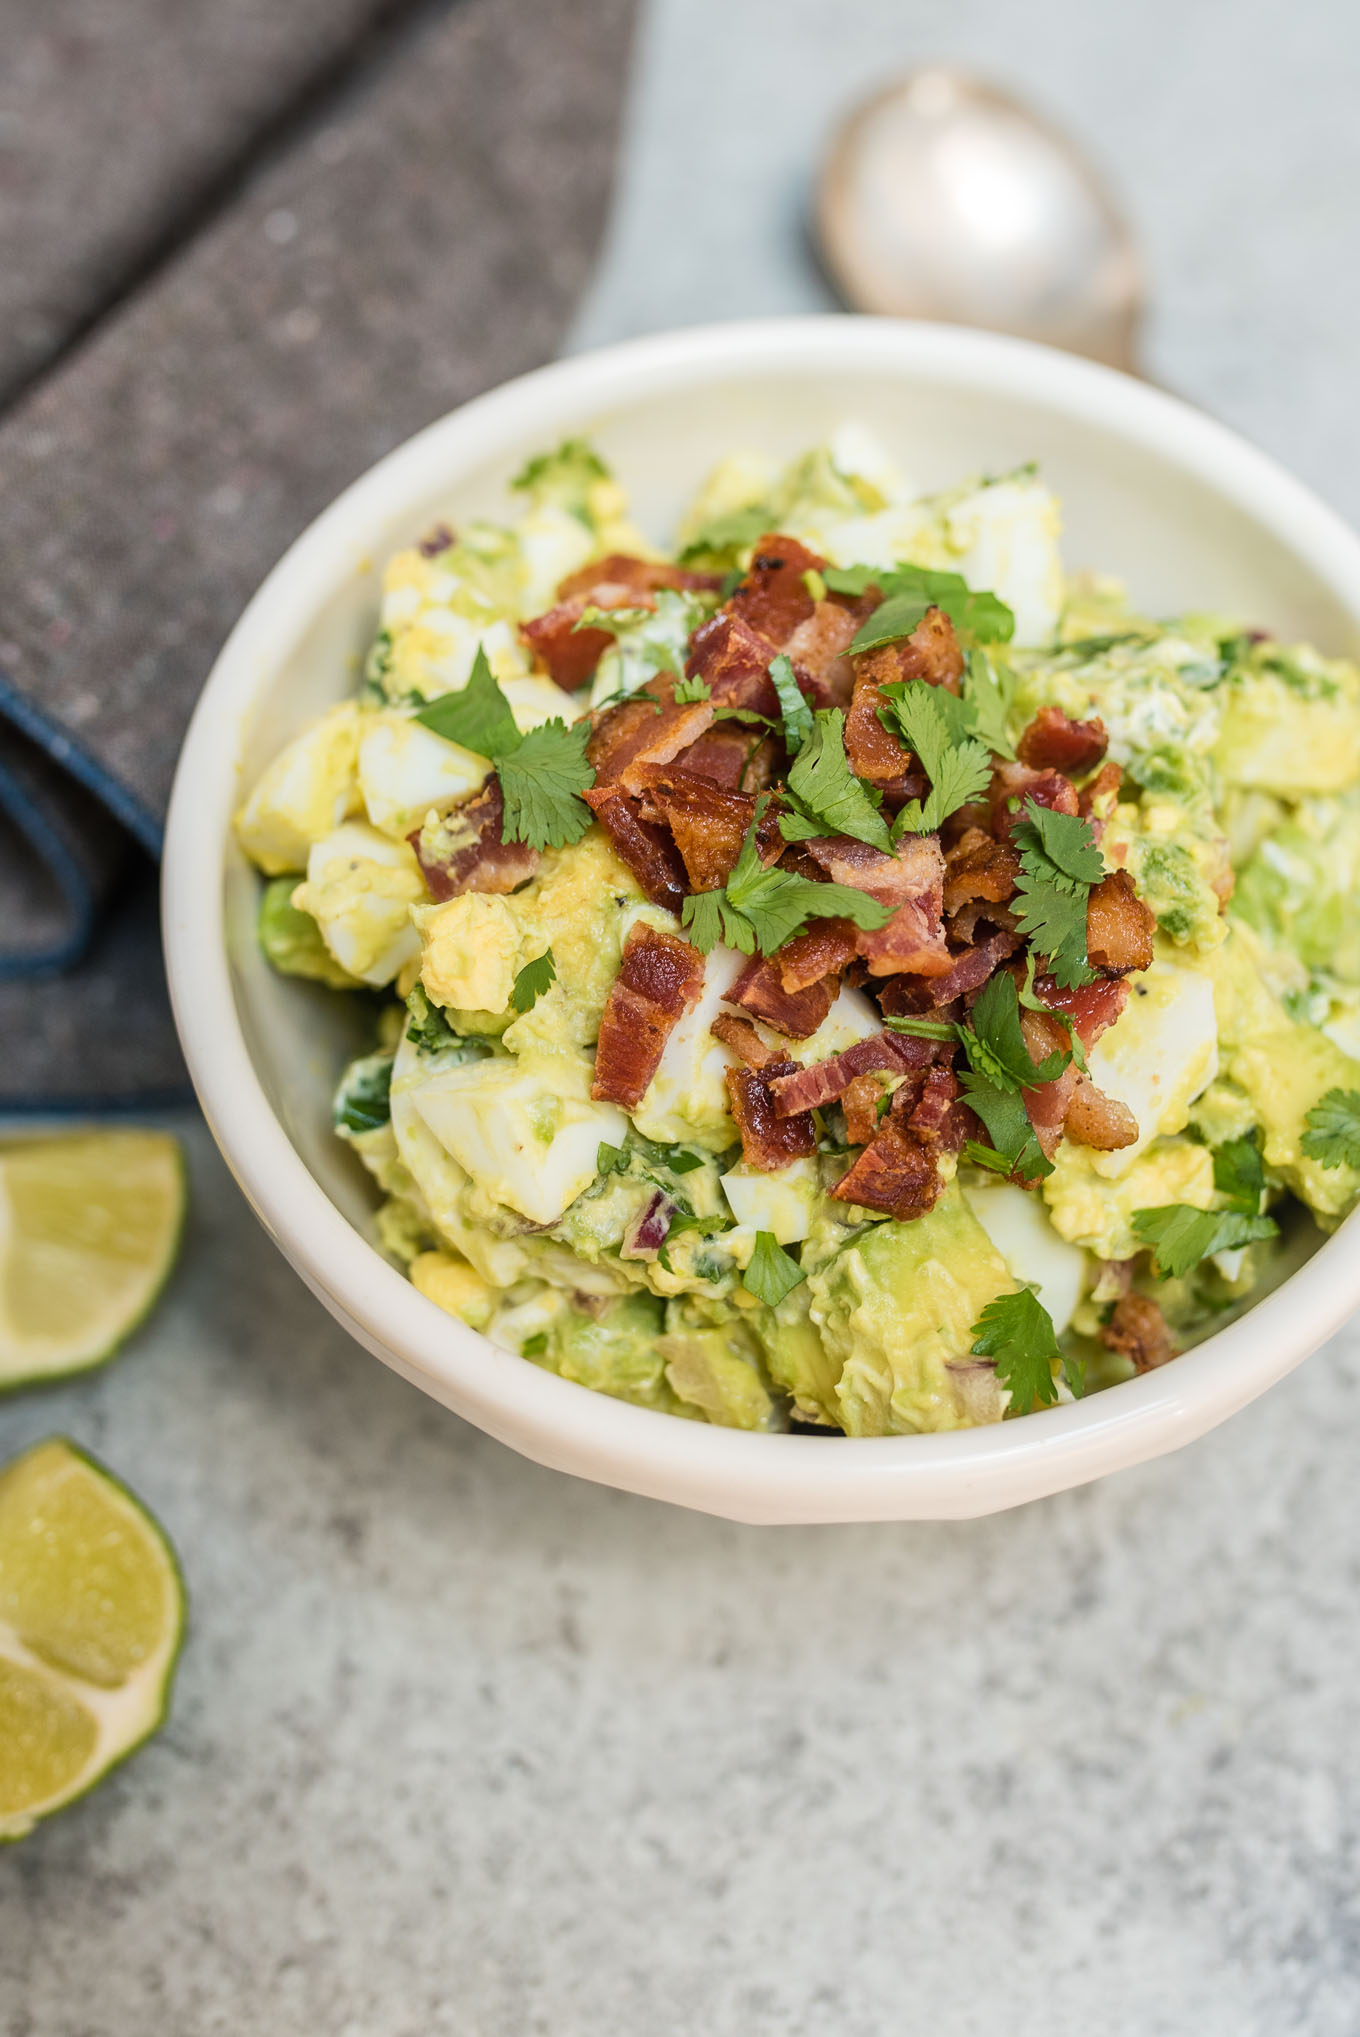 Guacamole Egg Salad tastes like that perfect guacamole recipe, but a little heartier with the addition of eggs and bacon. It makes a great dip, sandwich or salad topping.